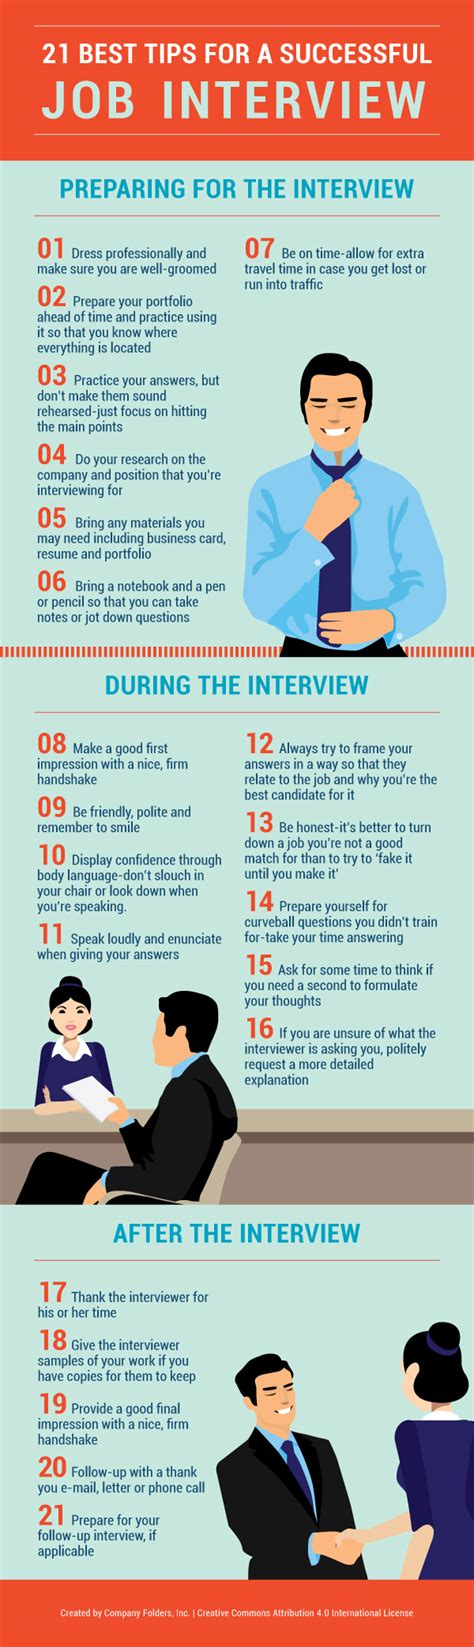 22+ Graphic Design Job Interview Tips Questions & Answers. Resumes For Receptionist In Office Template. Standard Rental Agreement Form Template. Medical Biller Job Description Template. Congratulations Messages On Success Of Business. Personal Financial Spreadsheet Template. Grocery Shopping List Template. Setting Up A Template In Outlook Template. All About Me Book Template